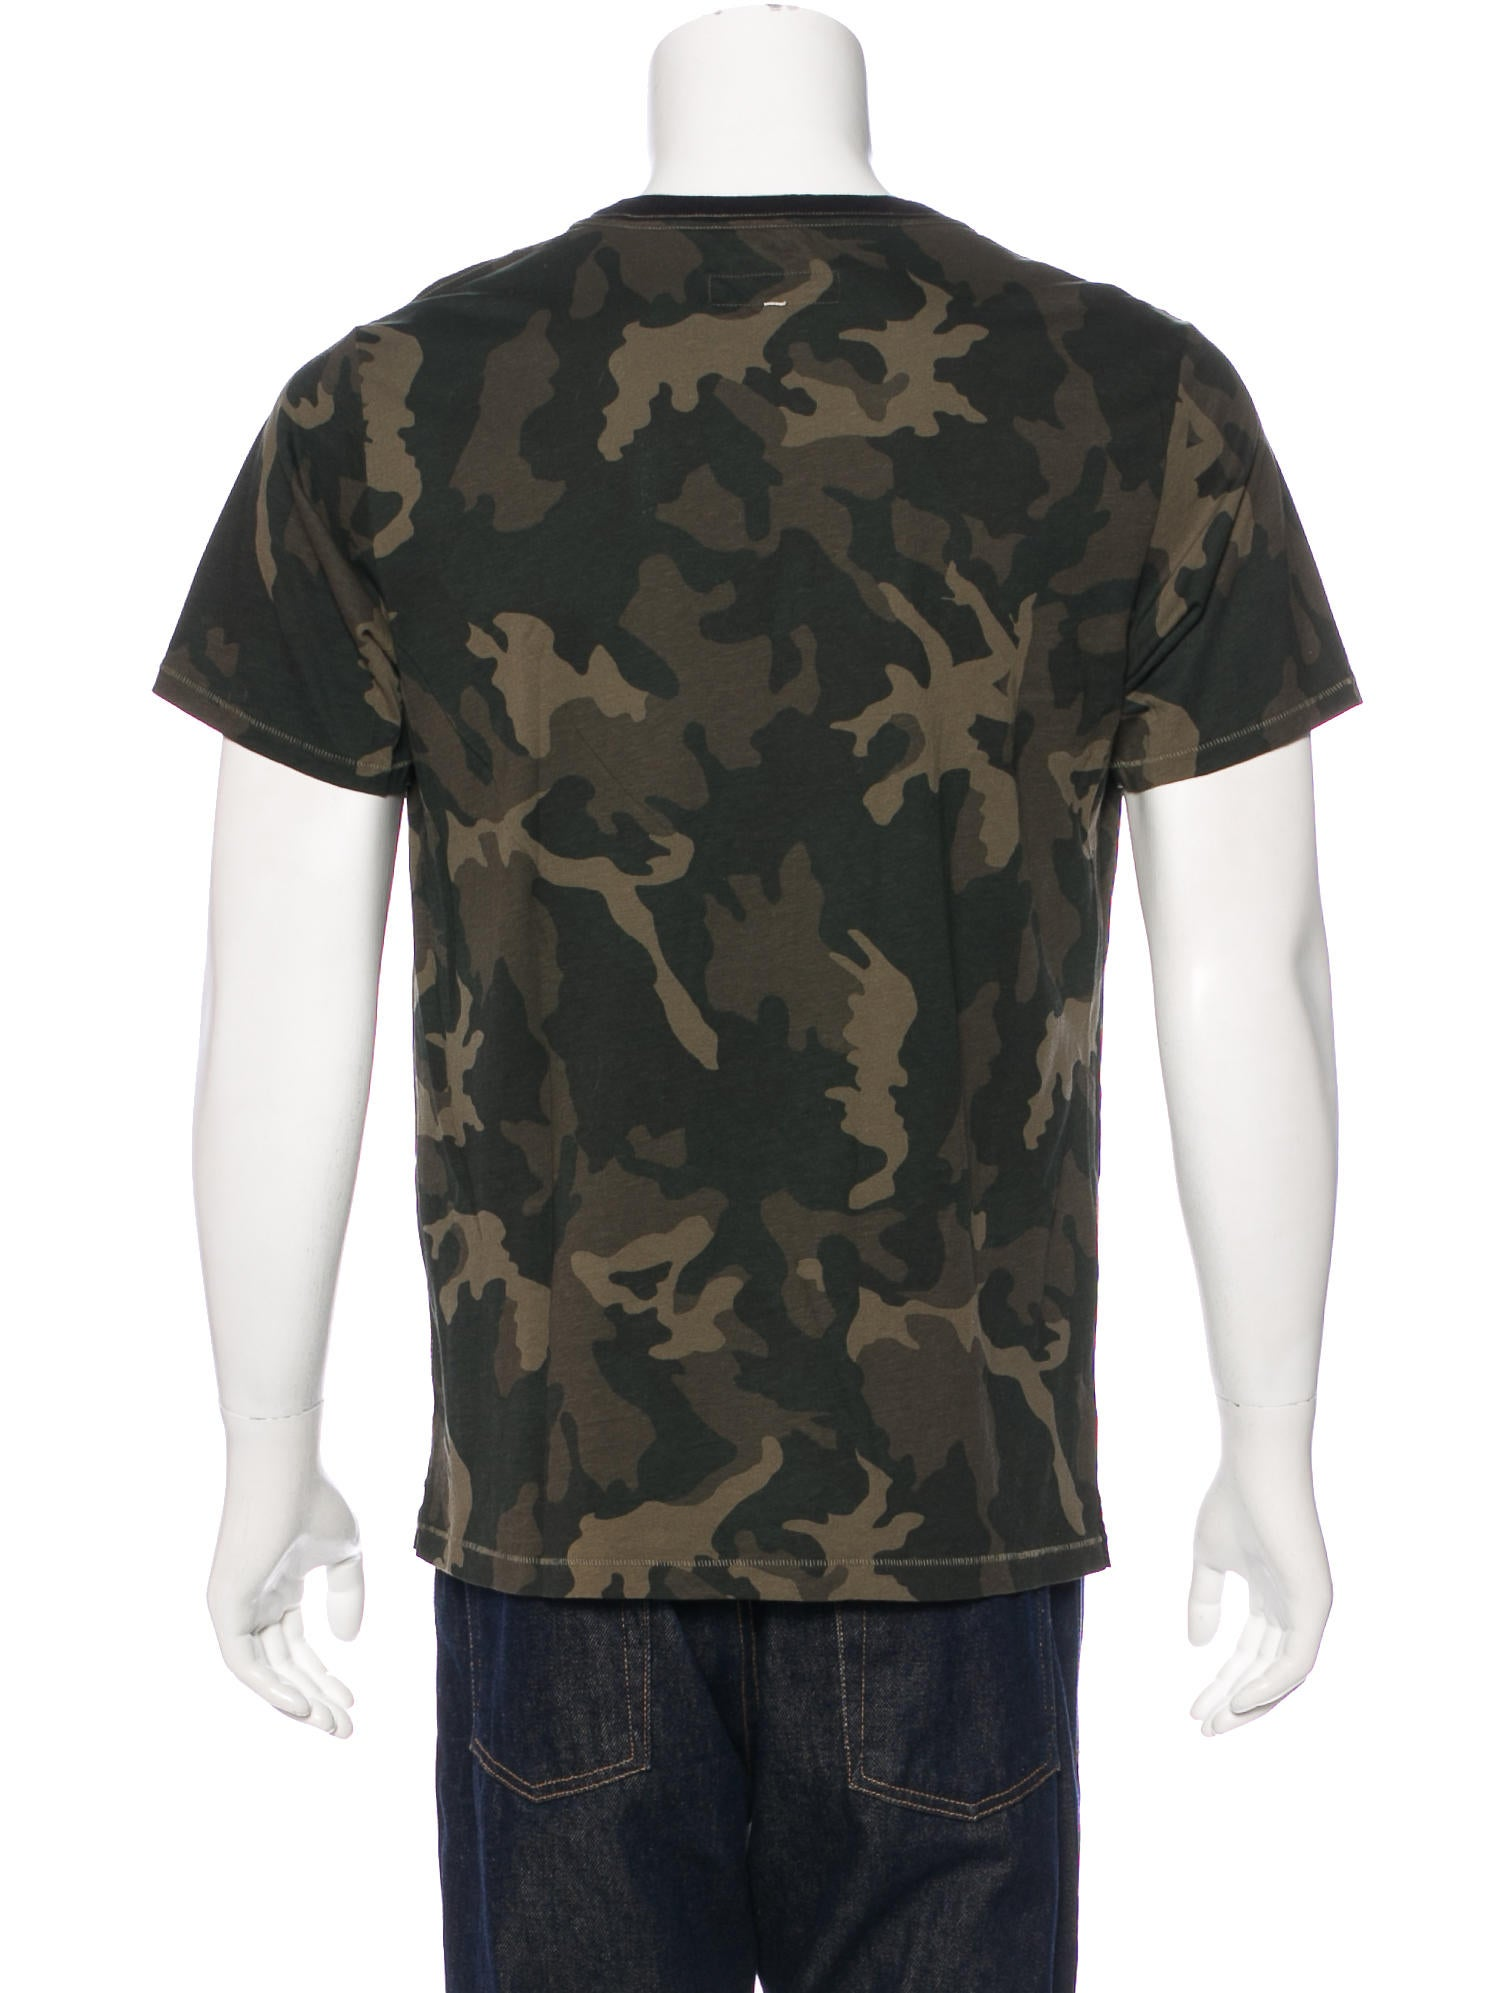 Rag bone camouflage print t shirt clothing for Camouflage t shirt printing